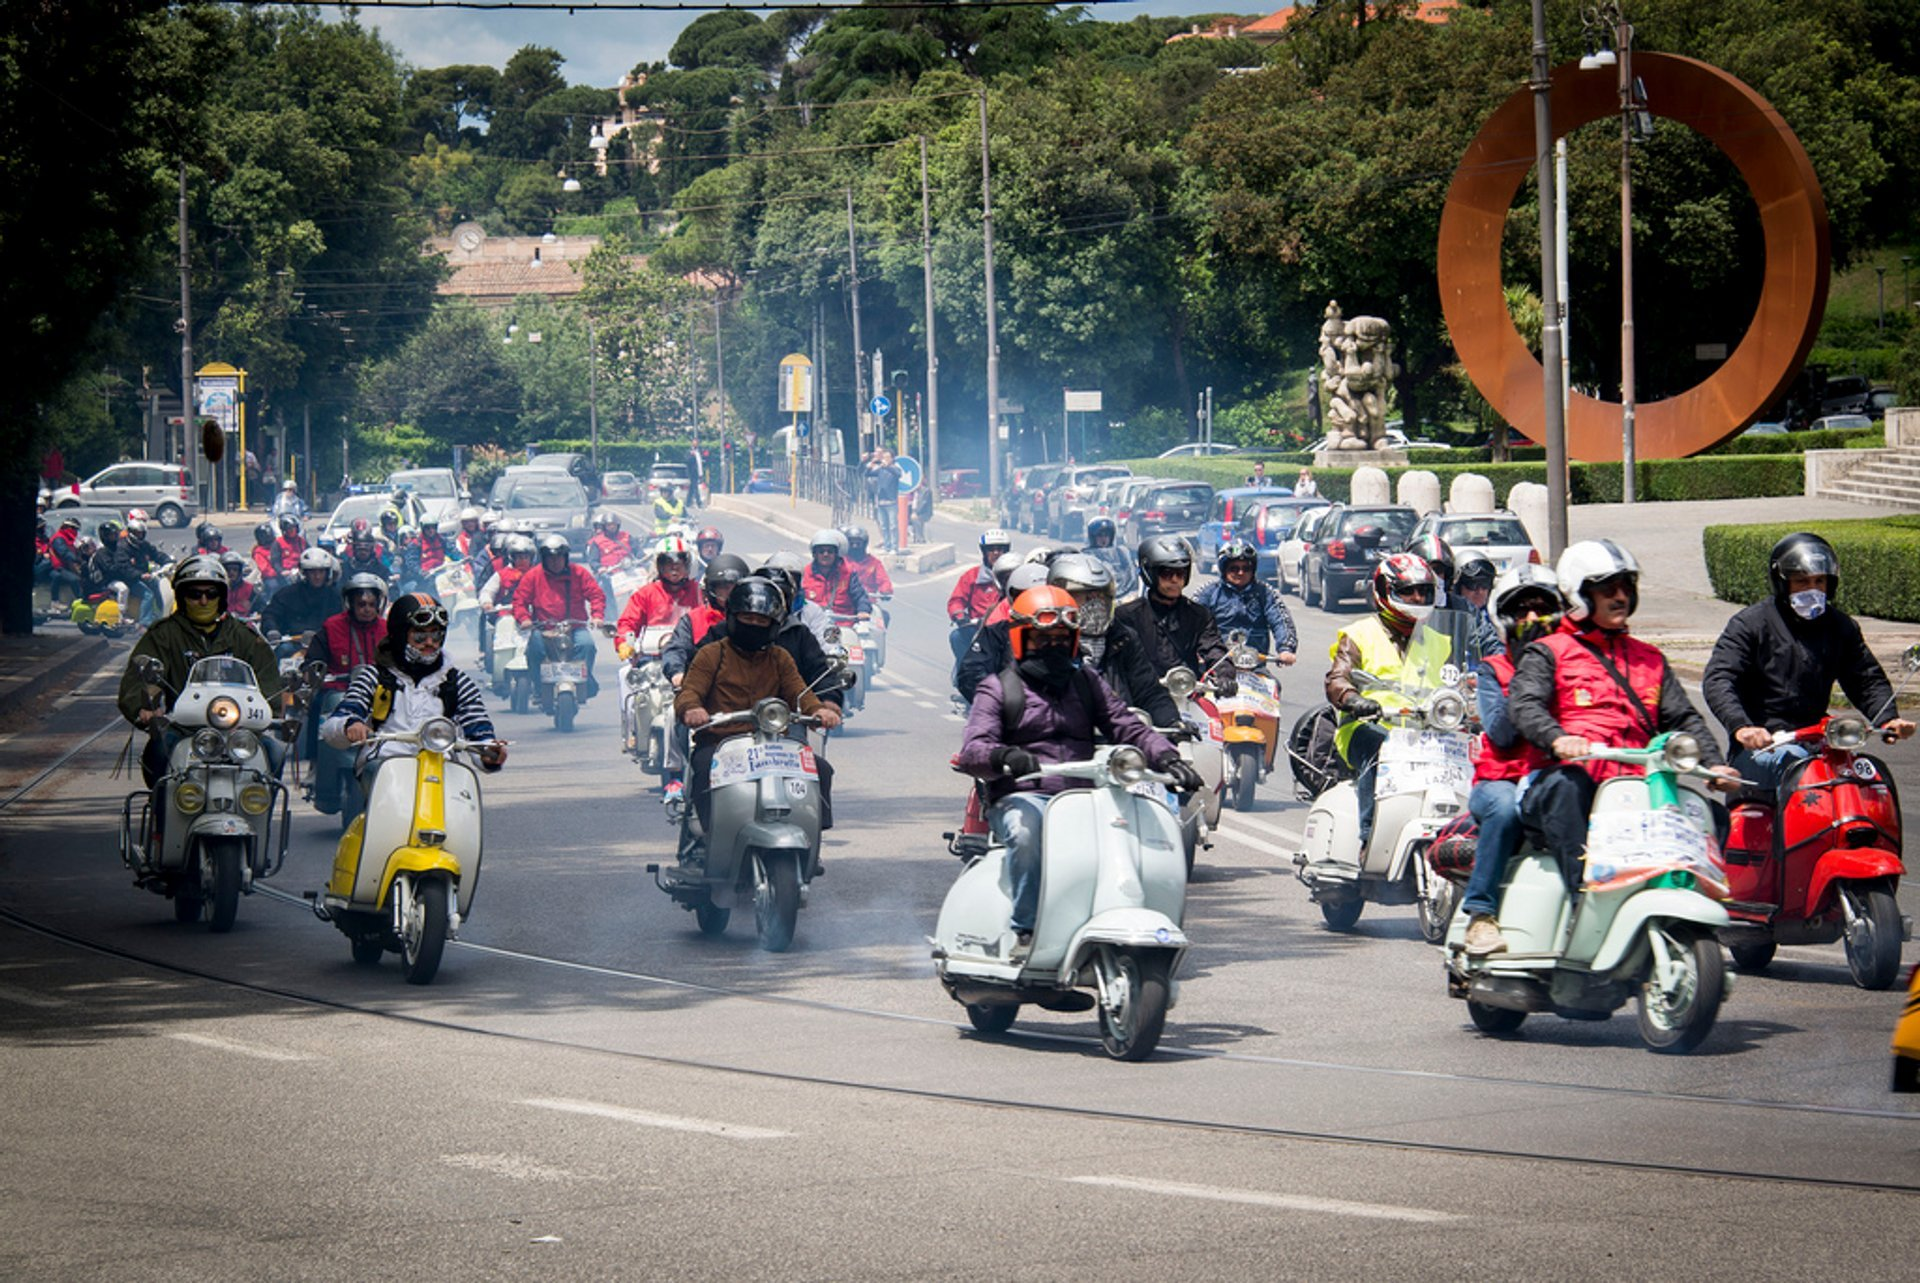 Vespa Scooter Tours in Rome 2020 - Best Time